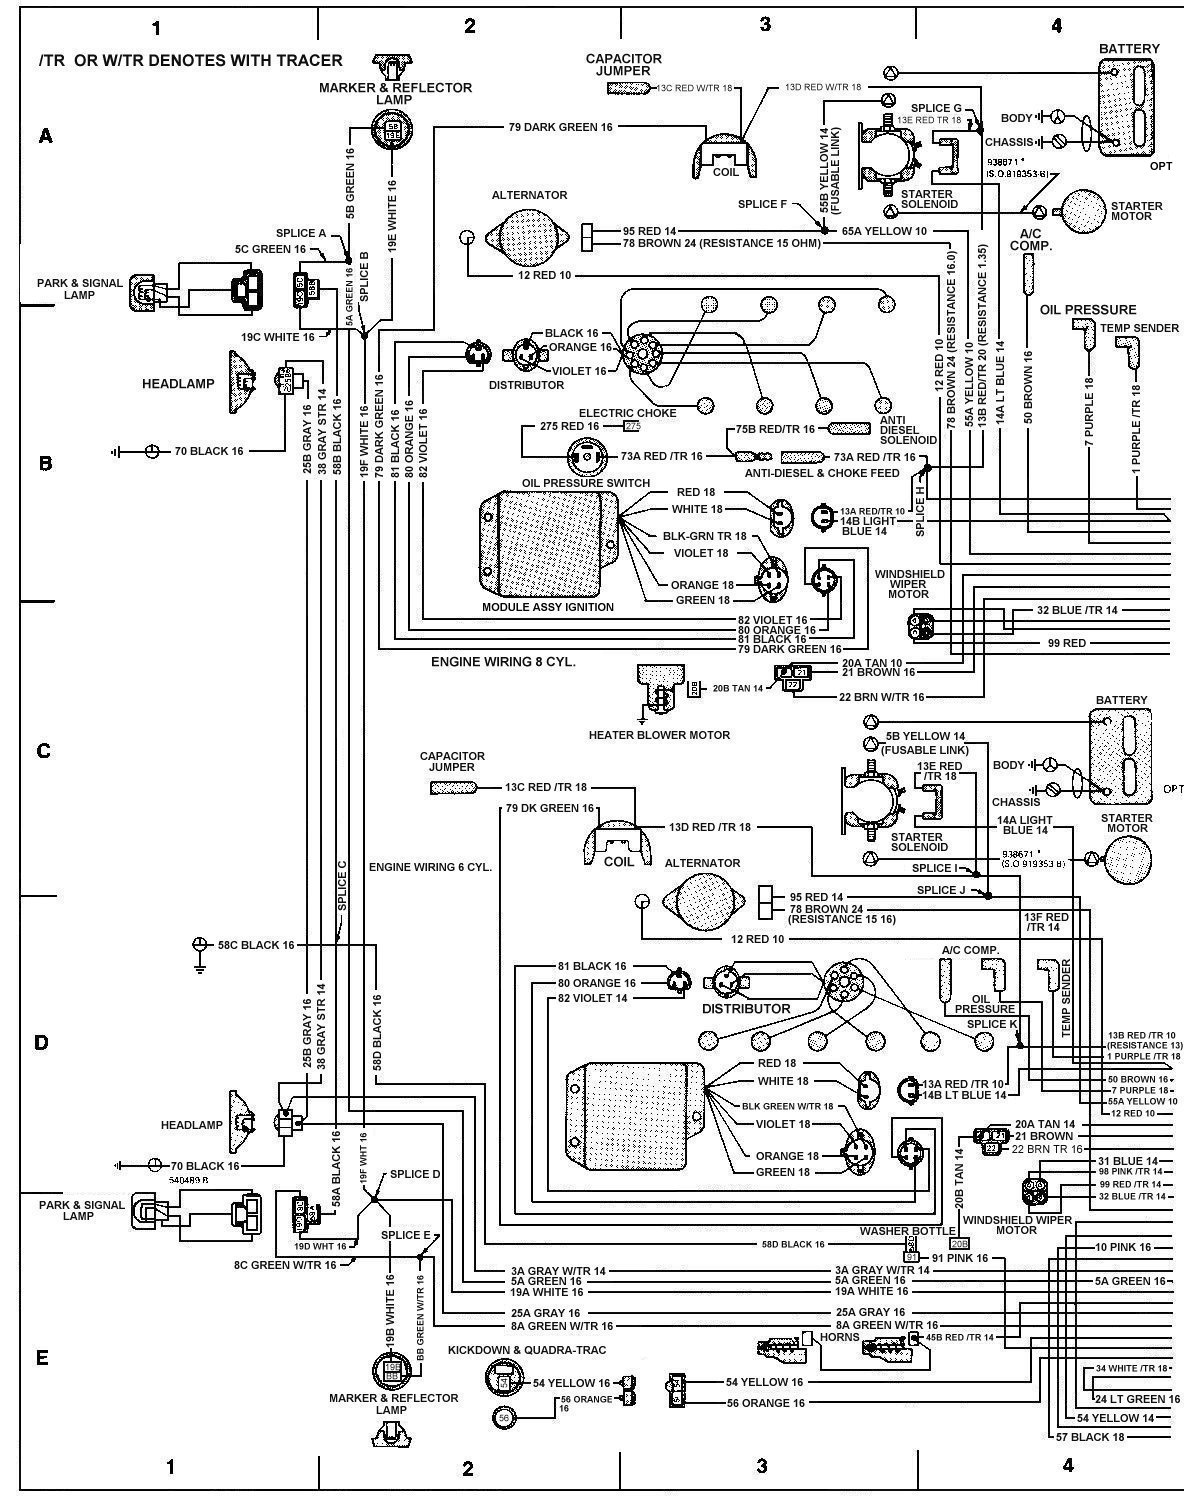 [DIAGRAM] 1978 Jeep Cj7 Ignition Wiring Diagram FULL